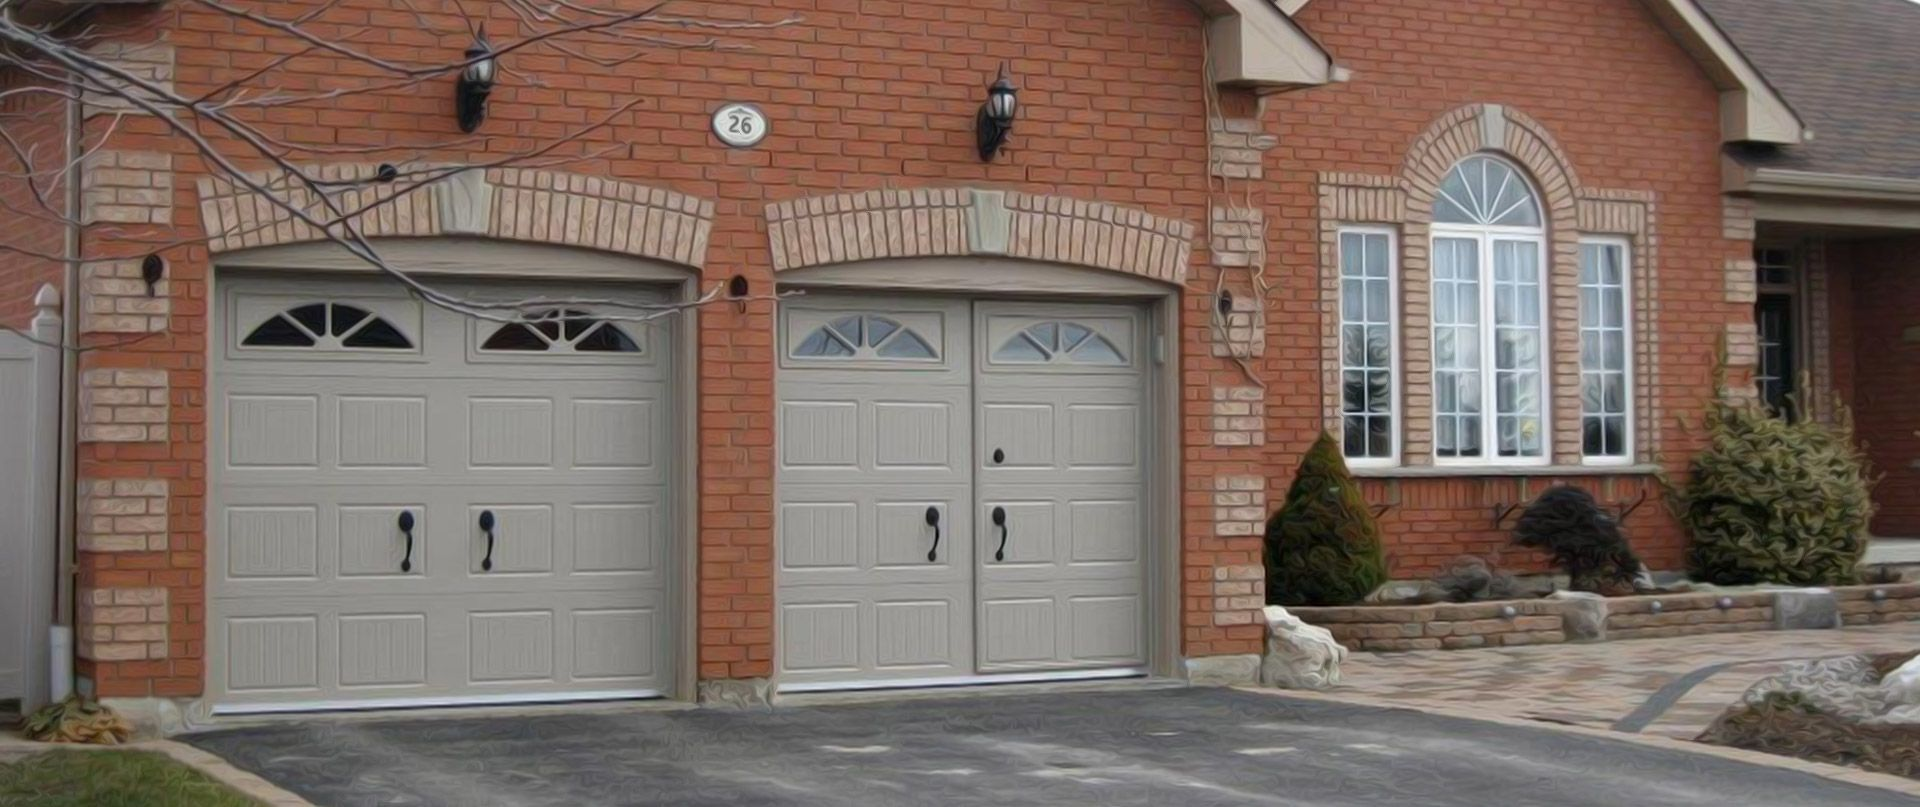 Walkthru Garage Doors In 2020 Garage Doors Glass Garage Door Garage